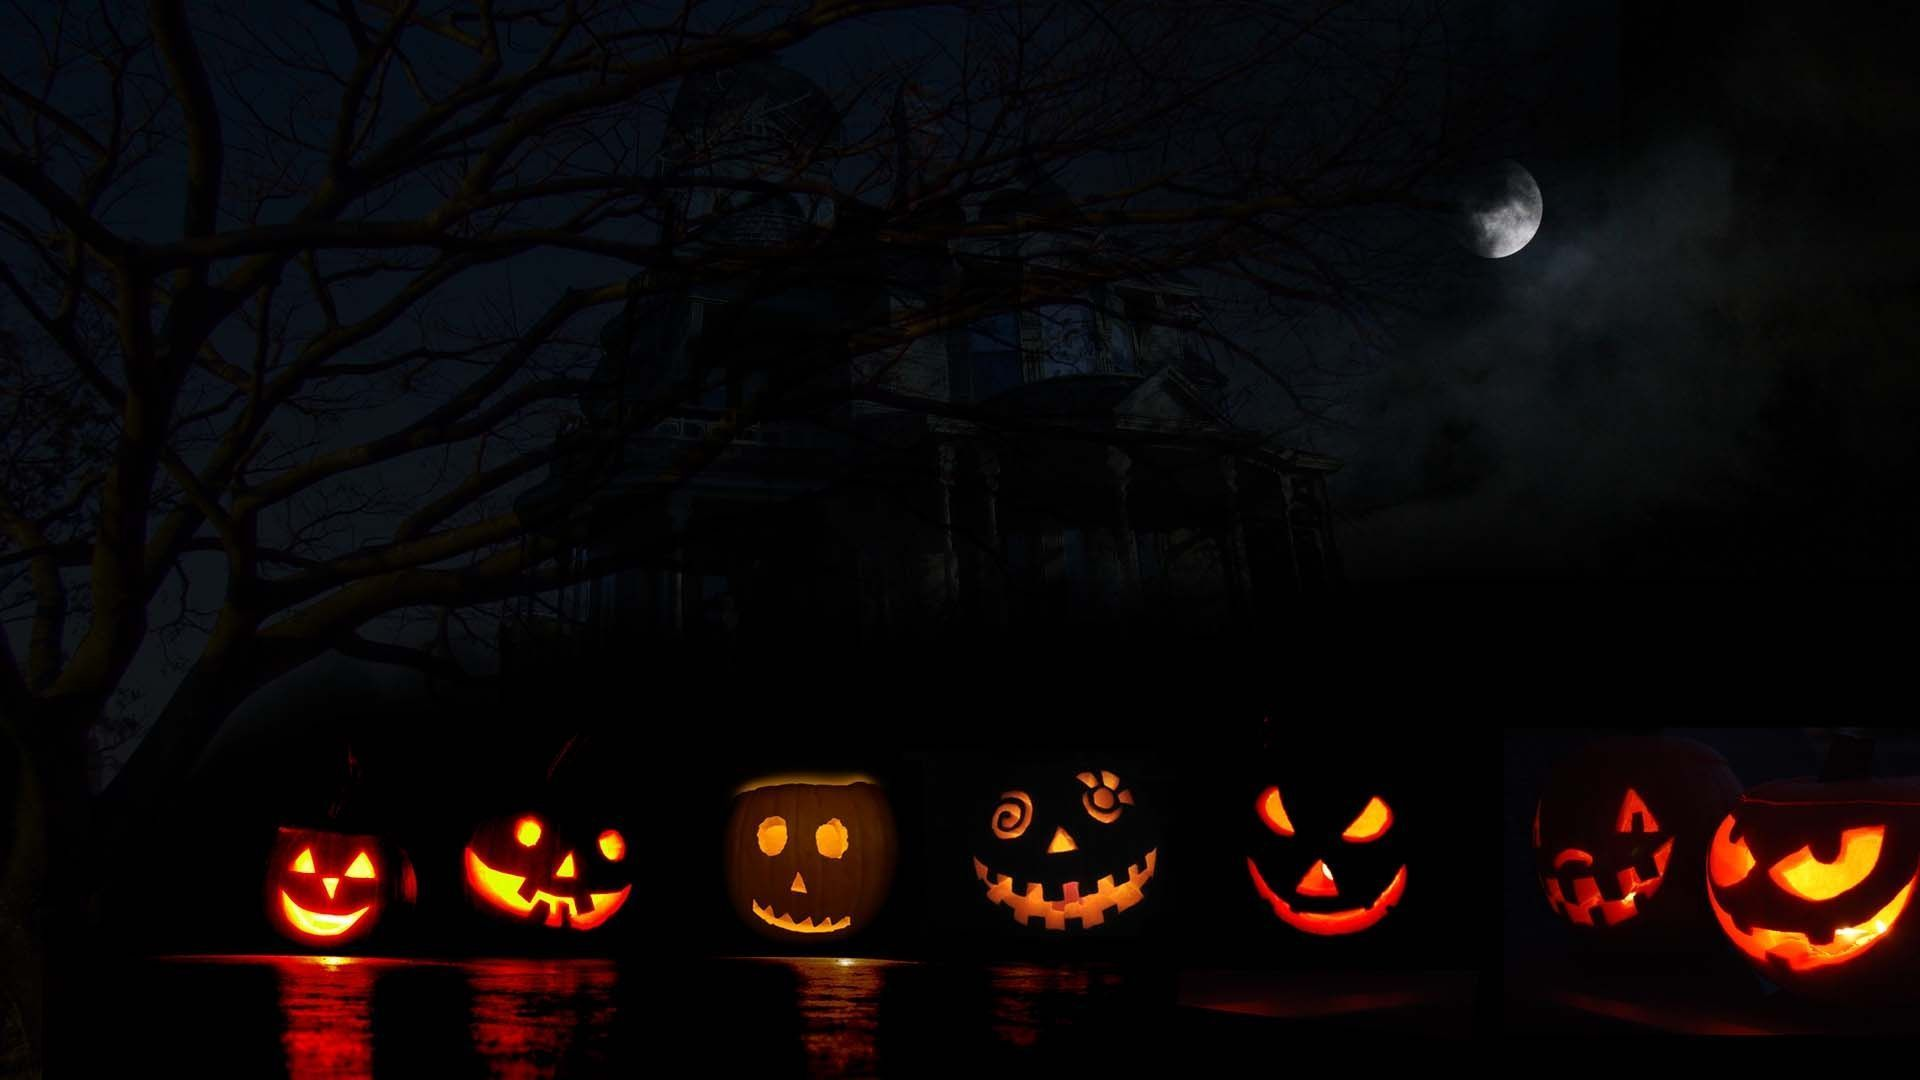 Halloween Wallpapers Free Downloads Group (80+)